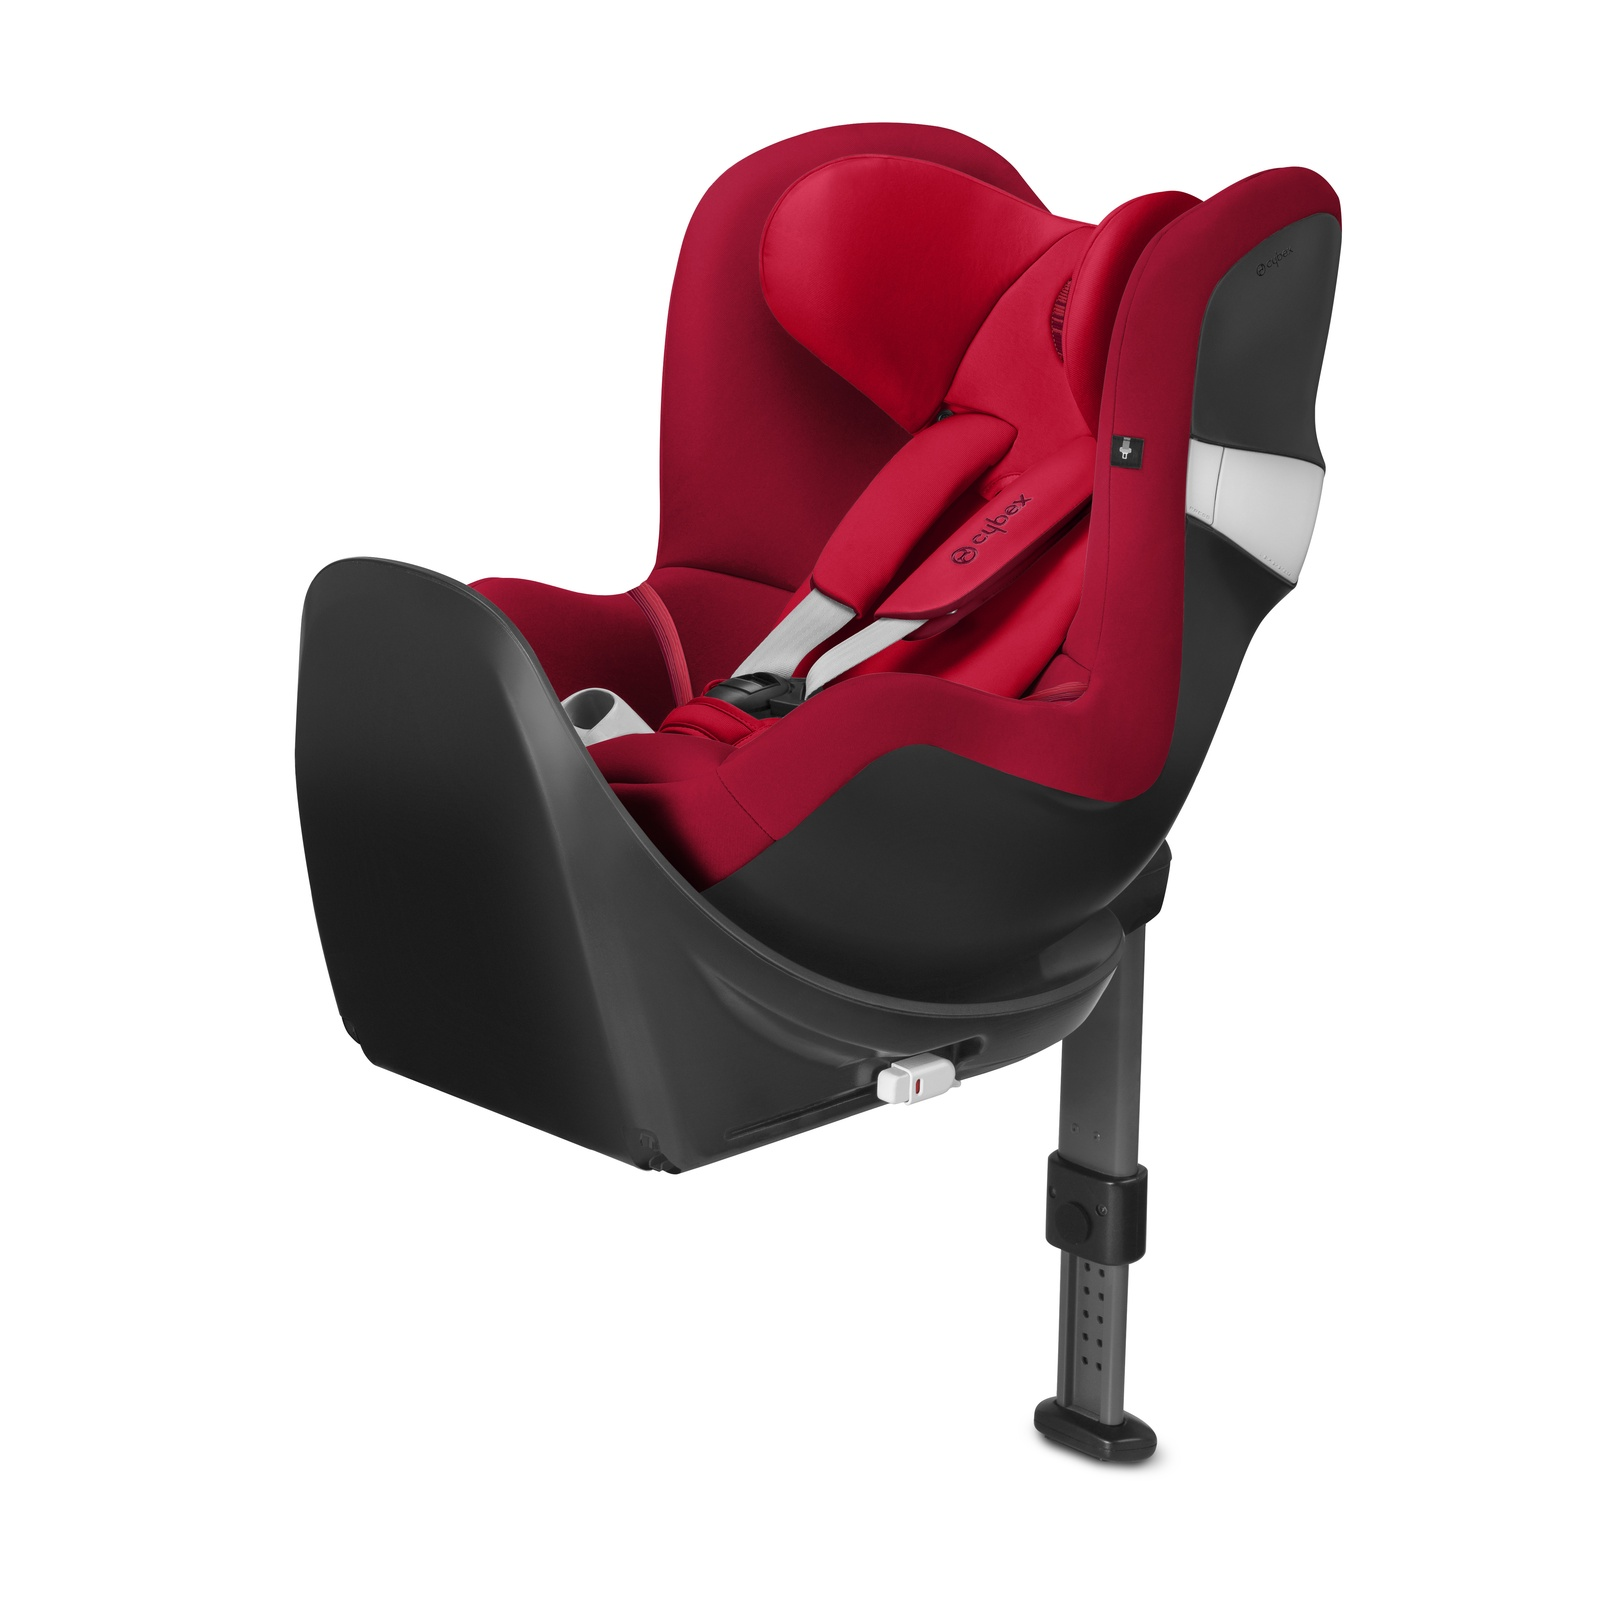 Автокресло Cybex Sirona M2 + Base M (Infra Red) цены онлайн